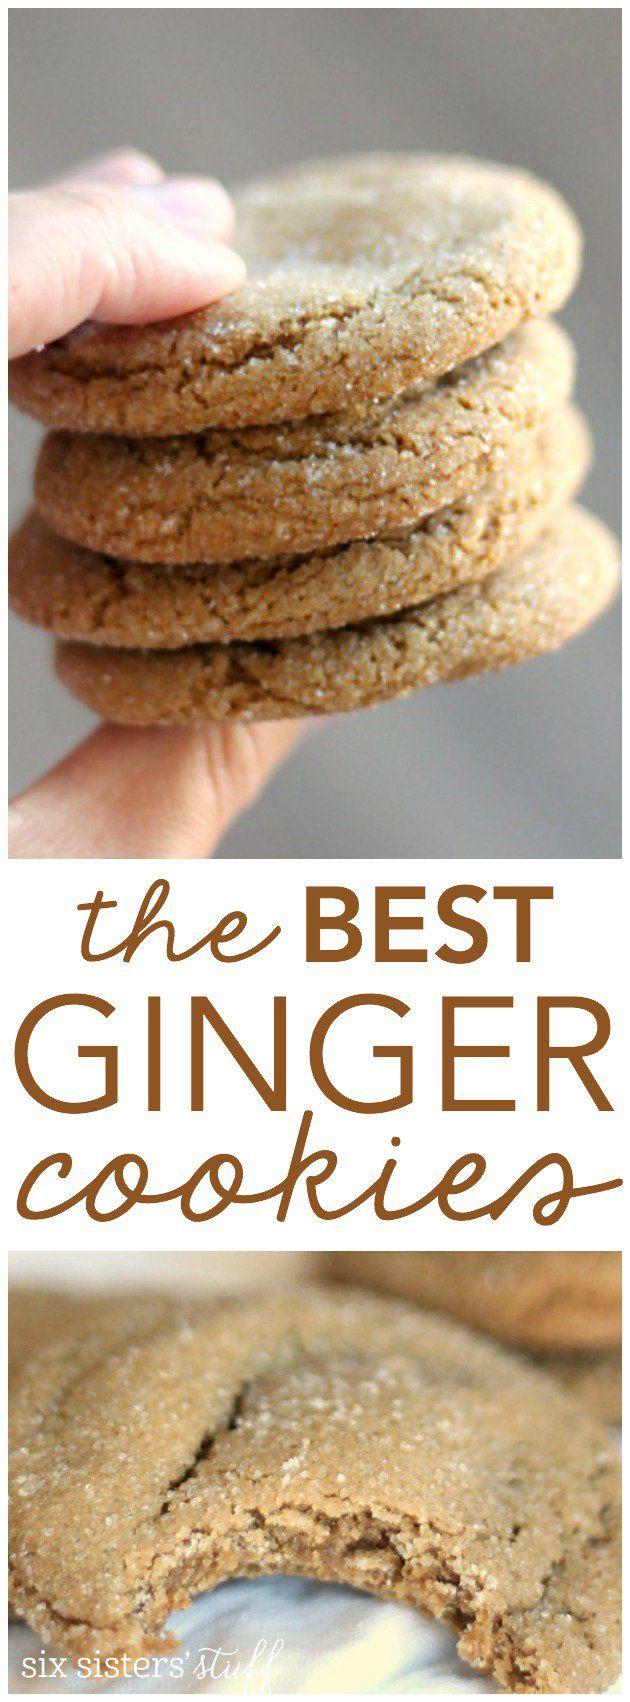 The BEST Ginger Cookies Recipe from SixSistersStuff.com